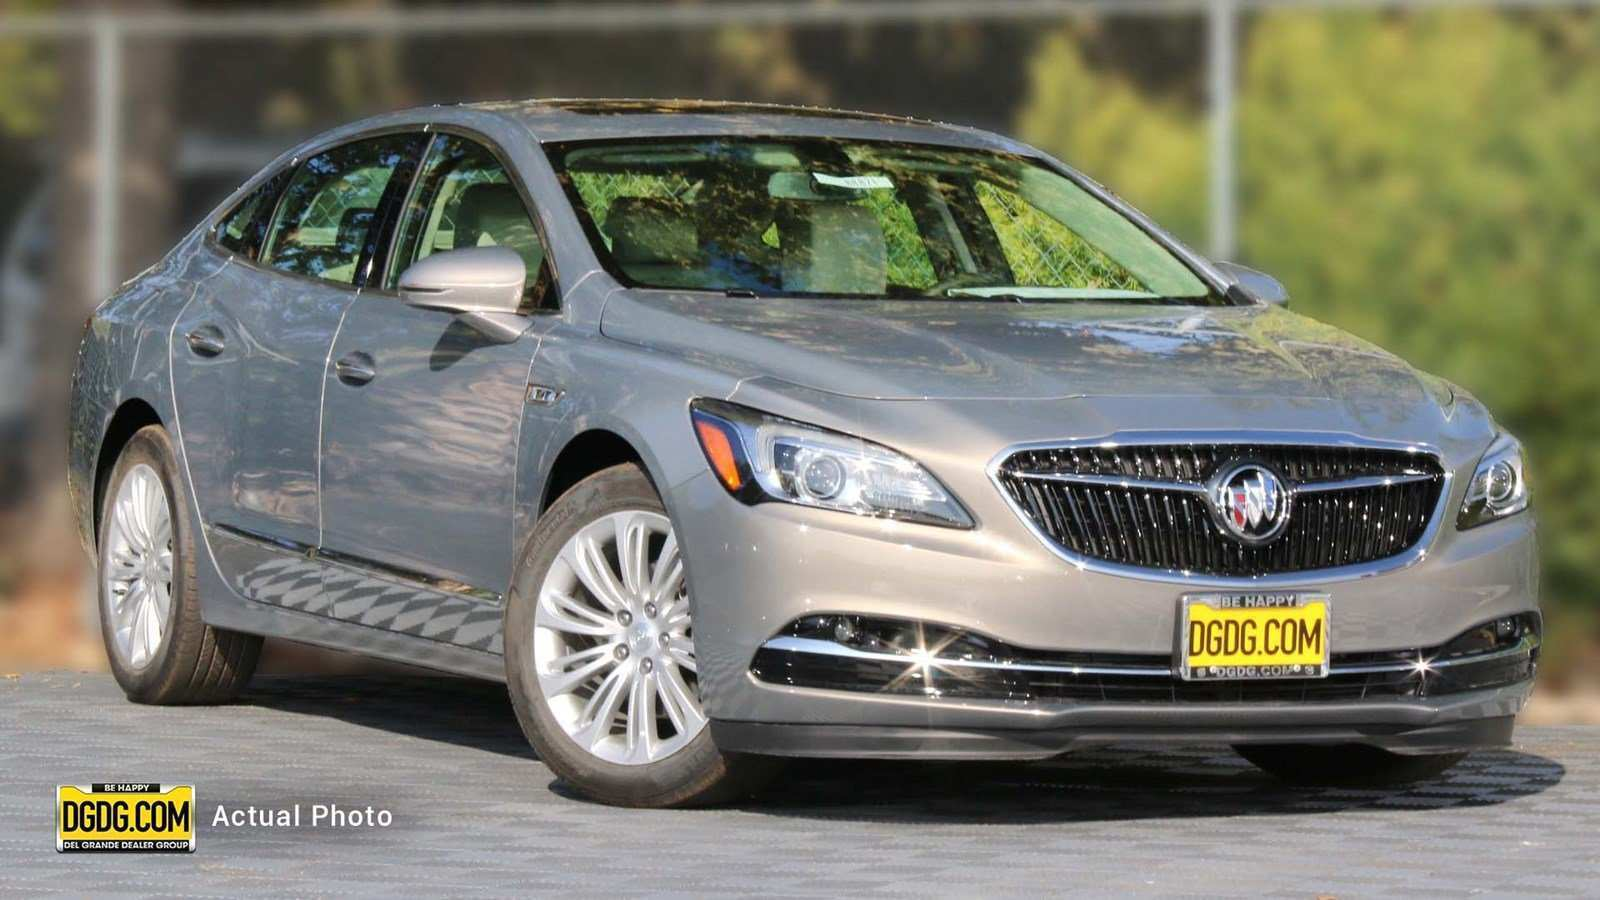 85 The Best 2019 Buick LaCrosses Release Date And Concept